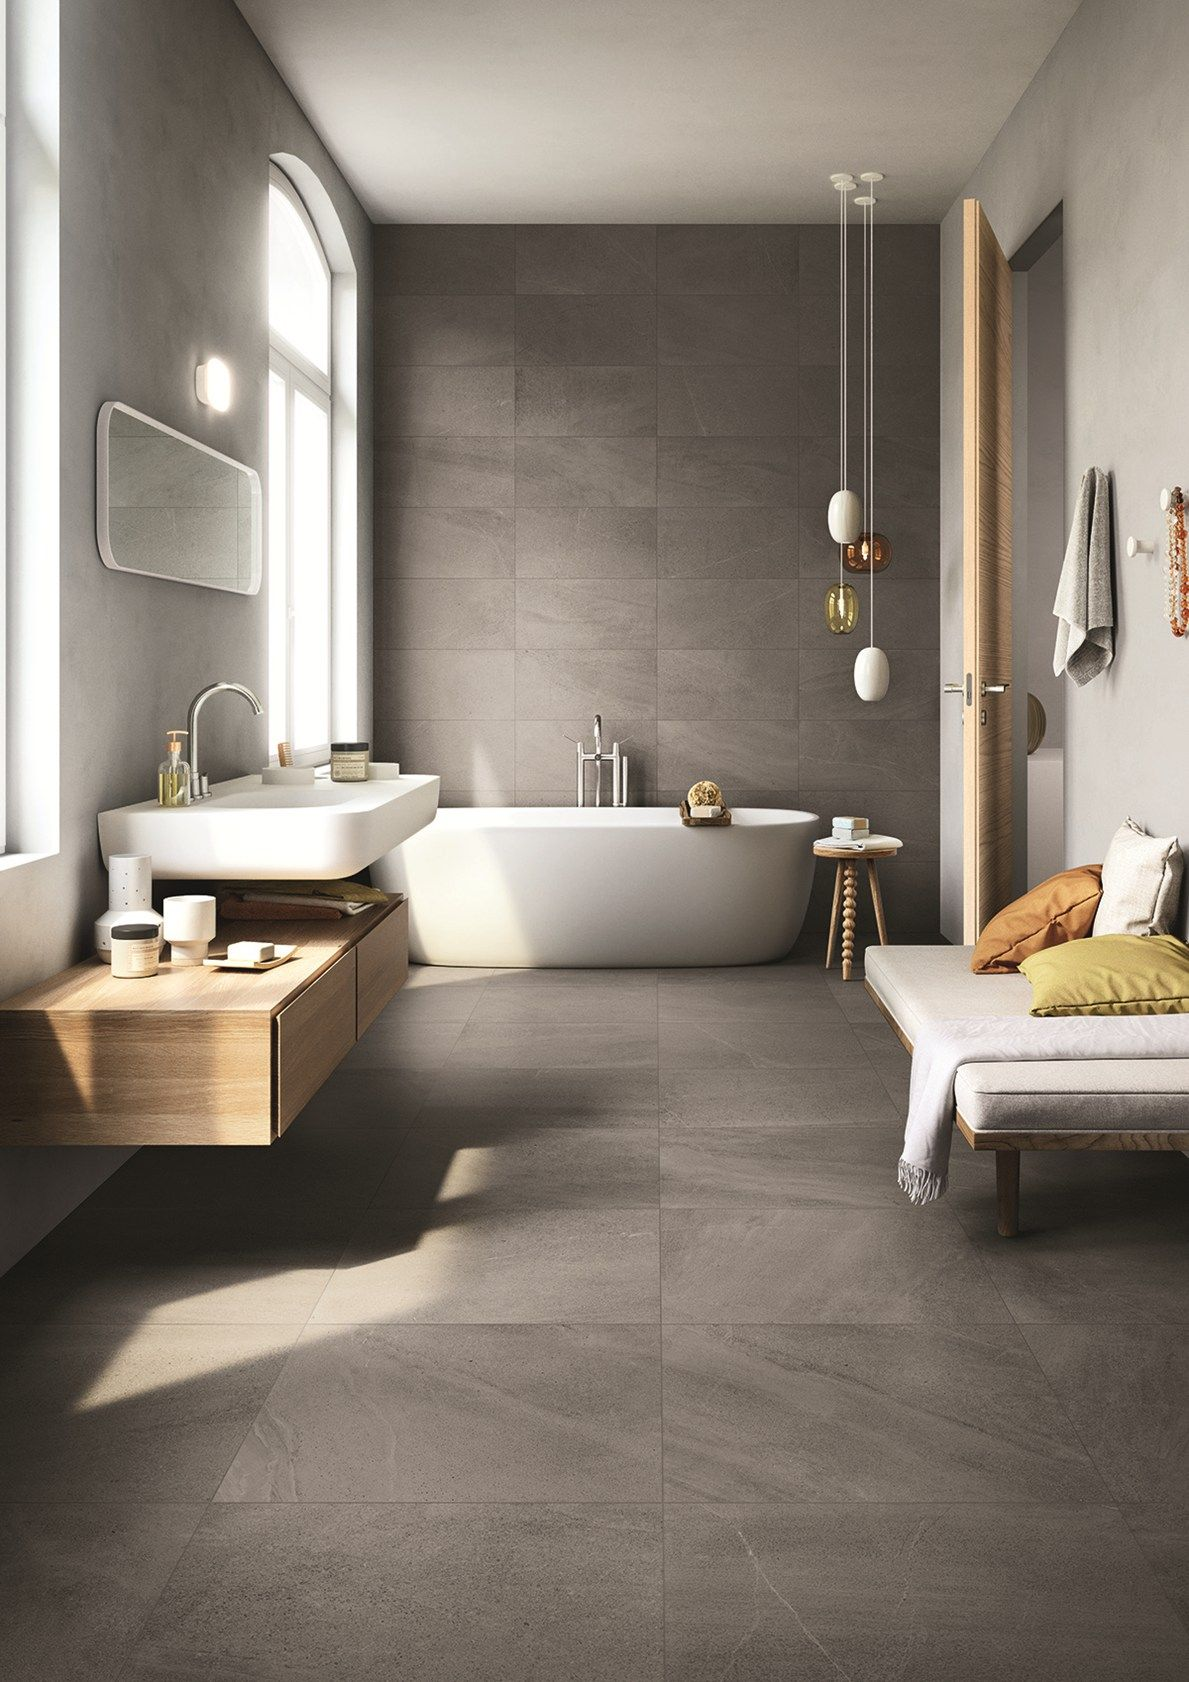 Industrial Design Bathroom Best The Texture Of Sedimented Stone For Limestone New Cotto D'este Design Inspiration